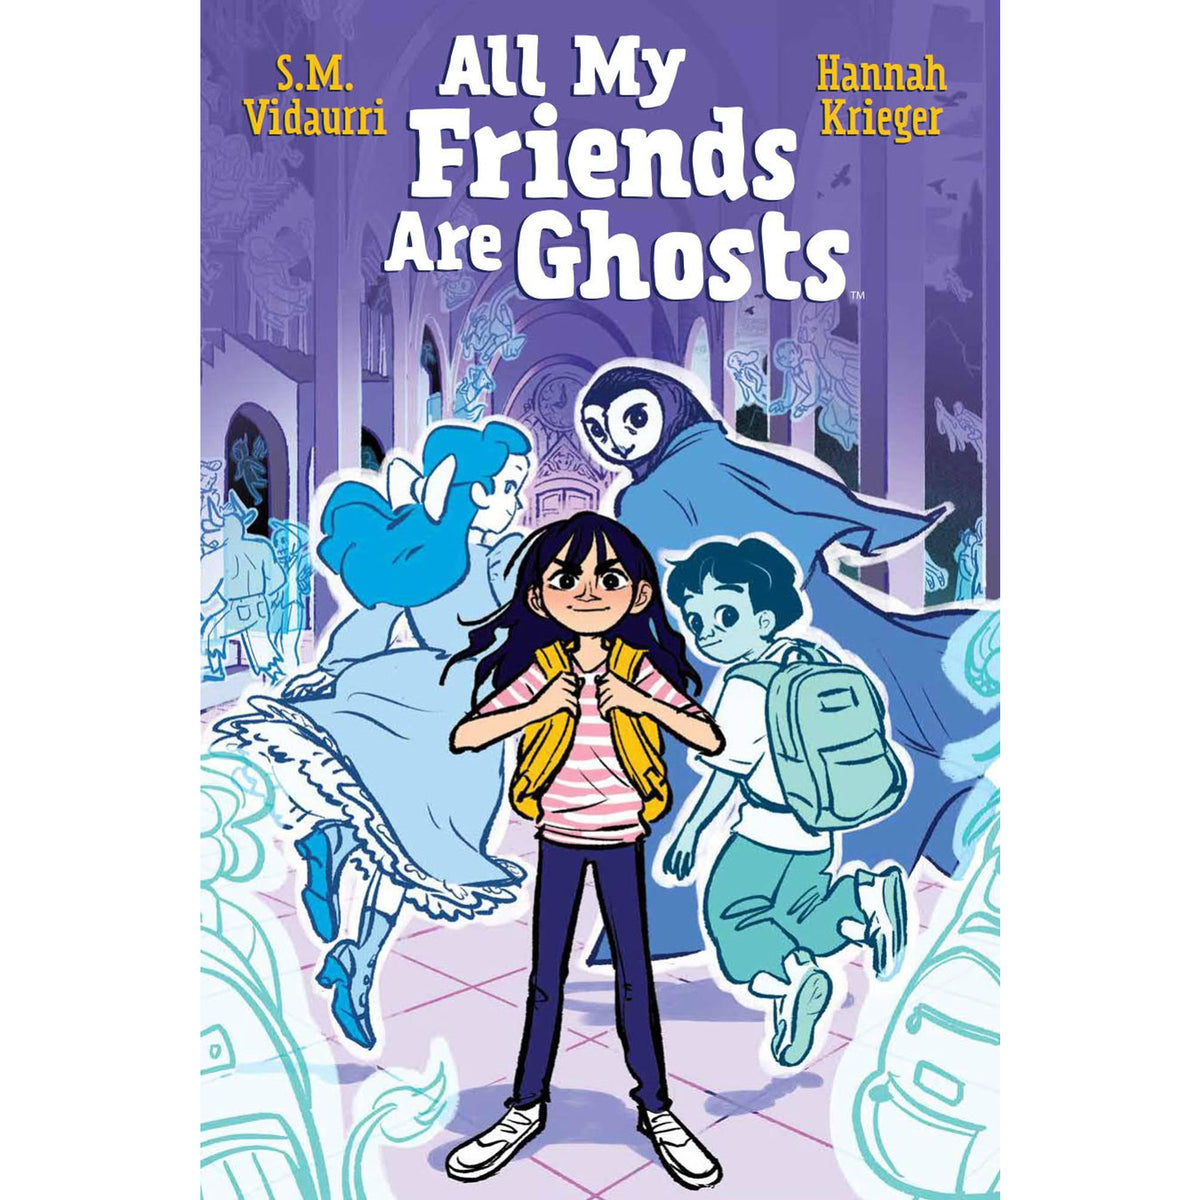 ALL MY FRIENDS ARE GHOSTS ORIGINAL GRAPHIC NOVEL